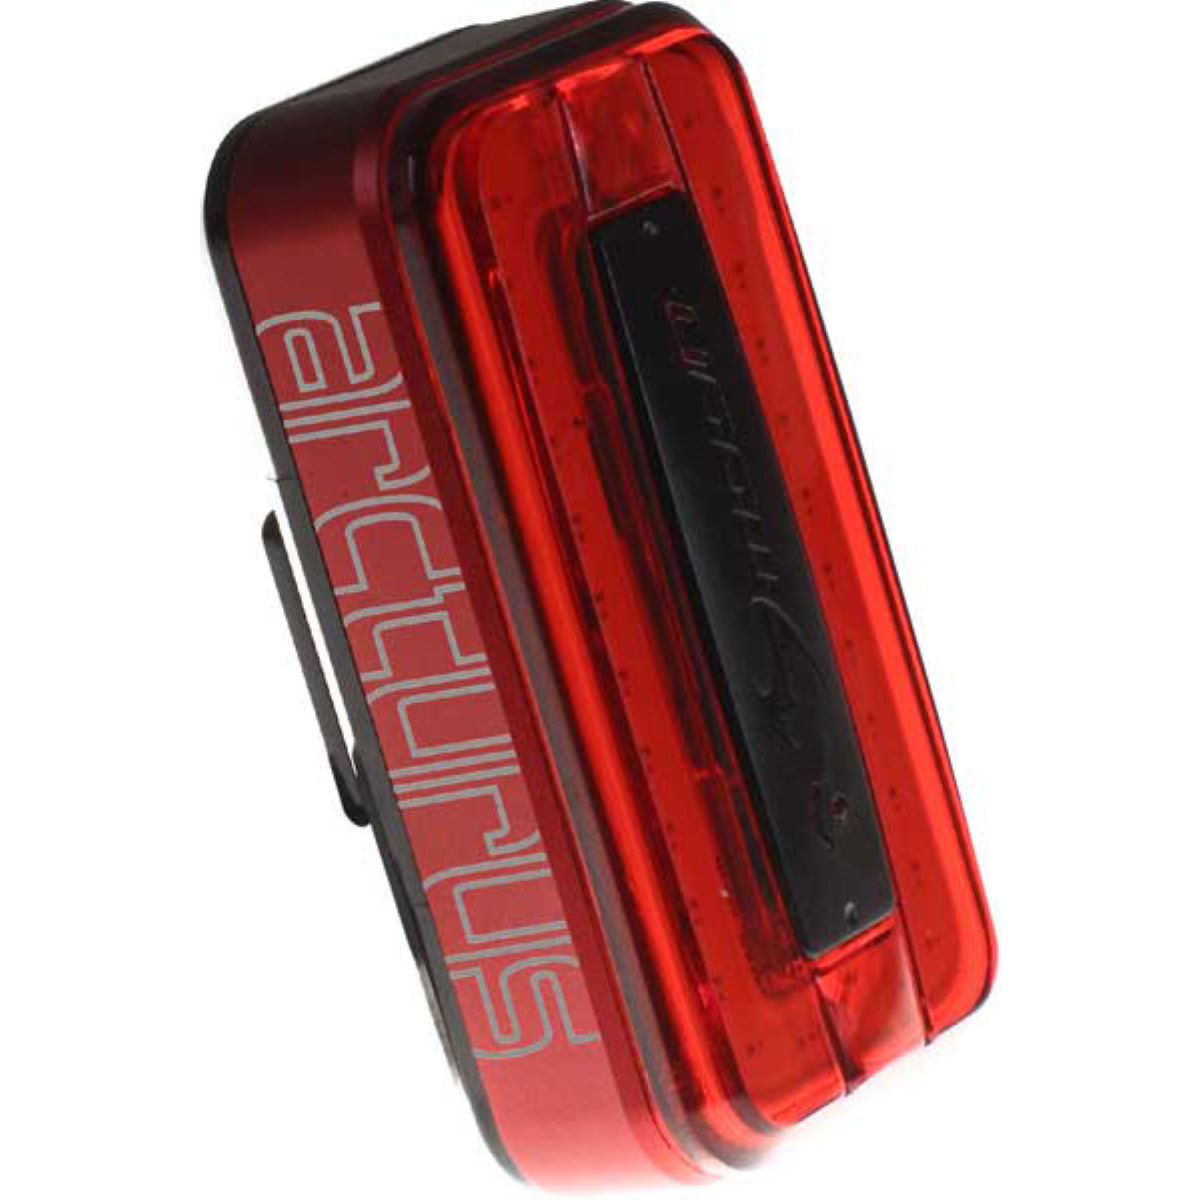 Moon Arcturus Auto Rear Light - Luces traseras